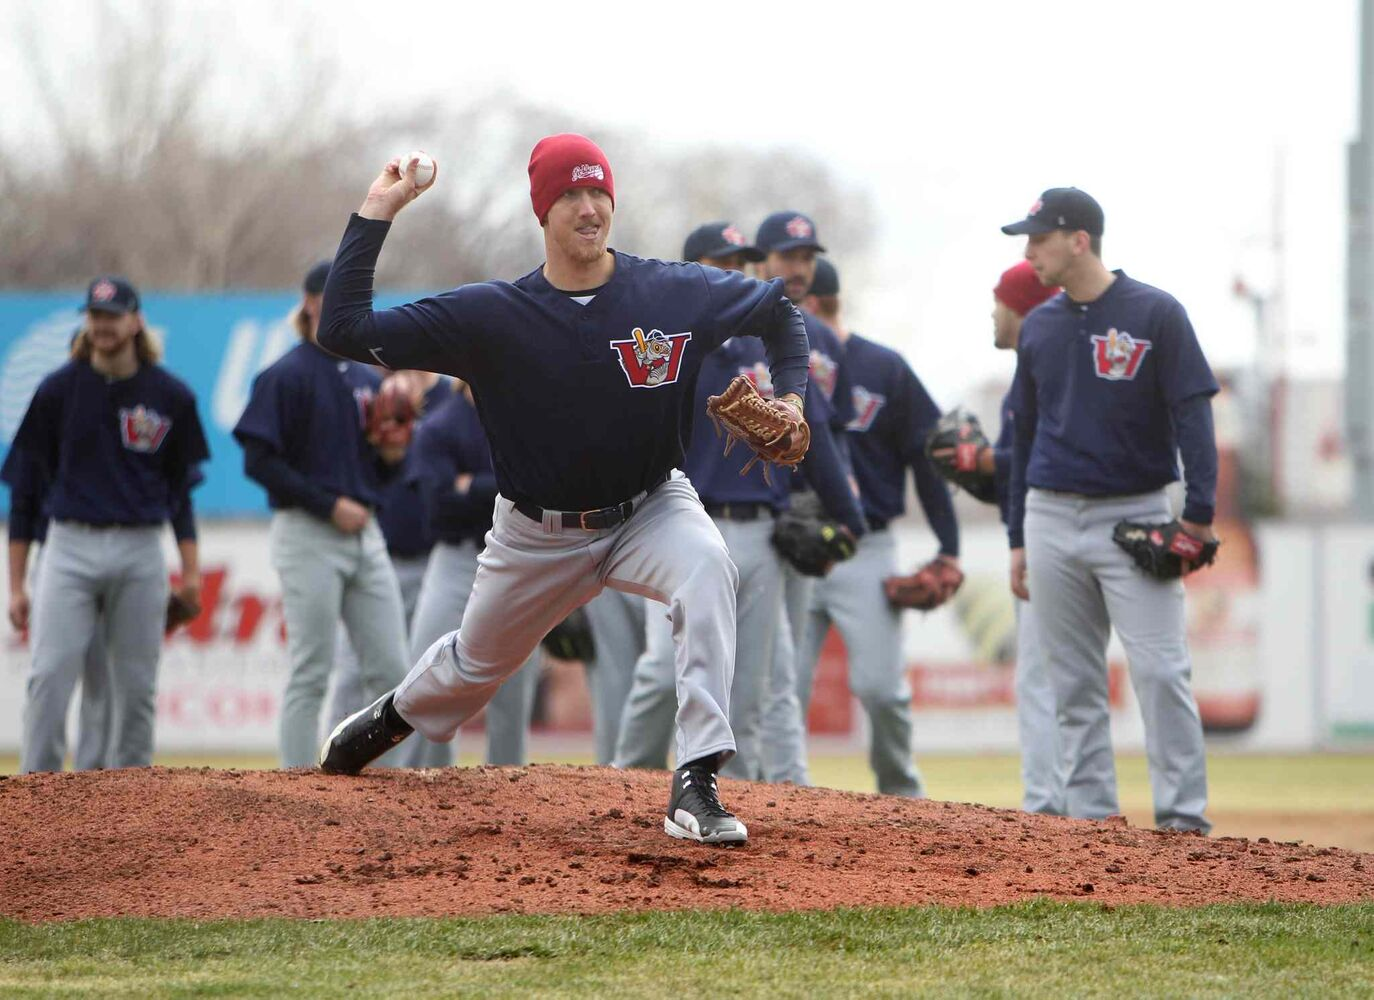 Kyle Bellamy, #23, throws a pitch at Shaw Park during the Winnipeg Goldeyes' first on-field workout of the year. (Ruth Bonneville / Winnipeg Free Press)